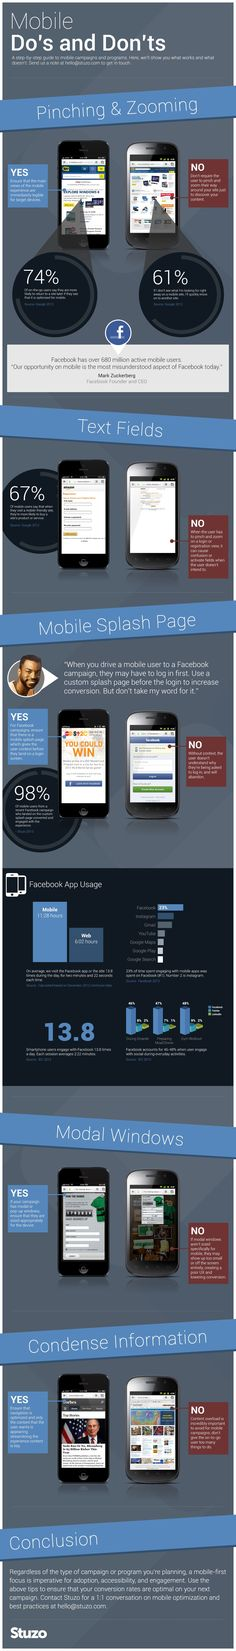 Do's And Don'ts Of Facebook Mobile